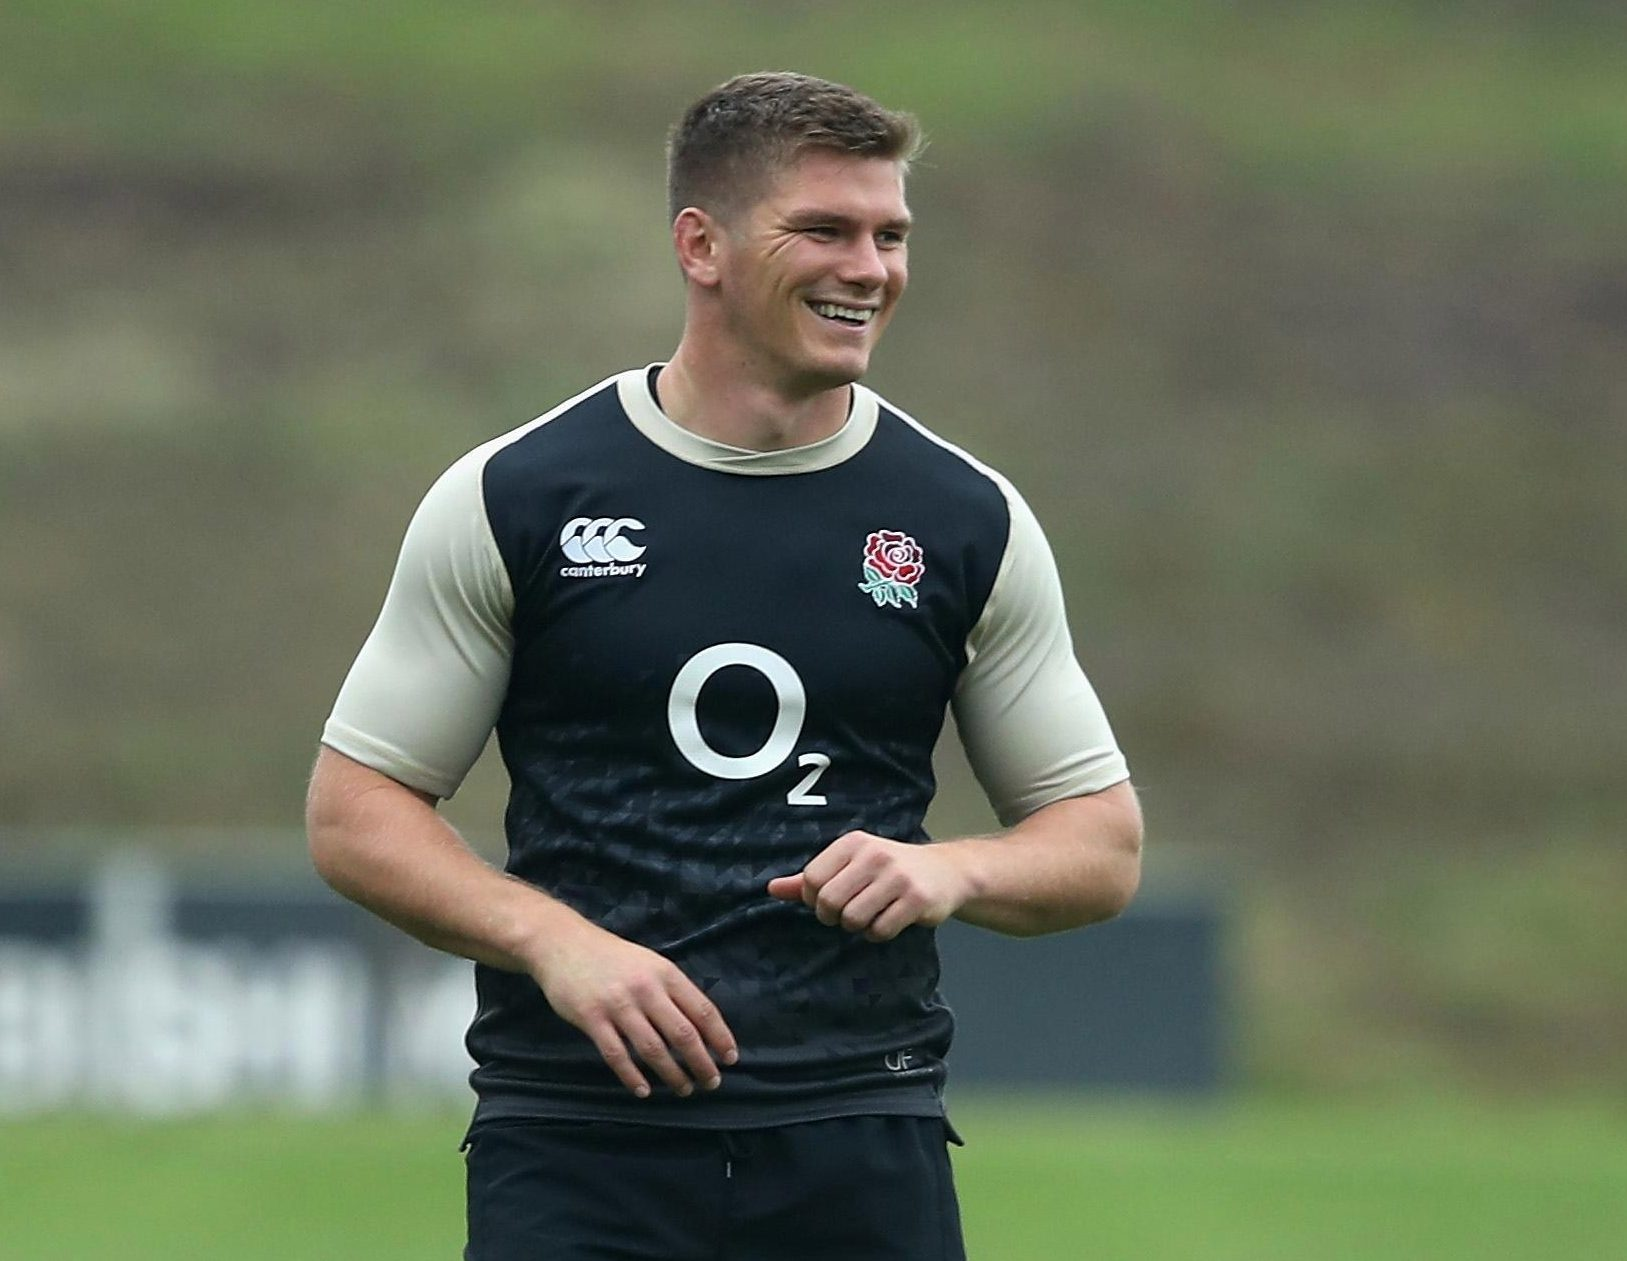 Farrell is now clear to face New Zealand provided he overcomes a hip problem